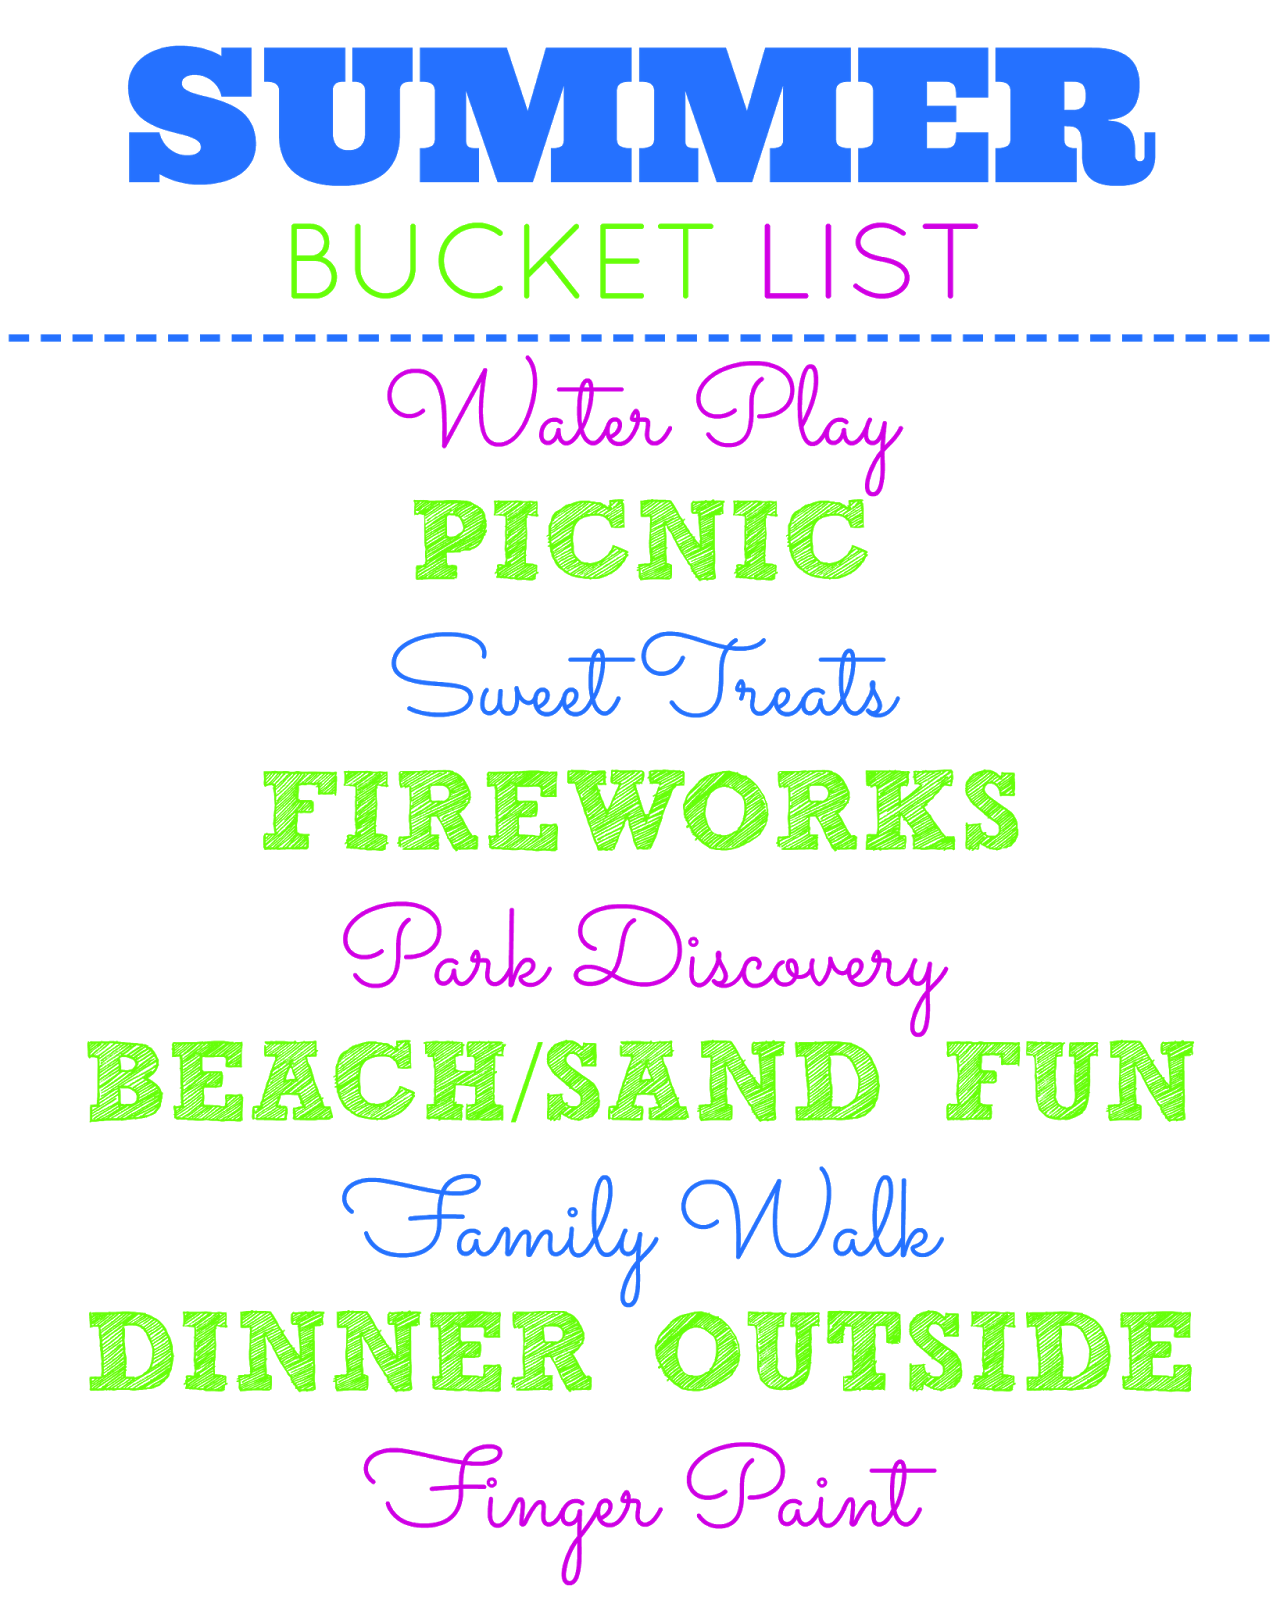 Summer Bucket List activities for families